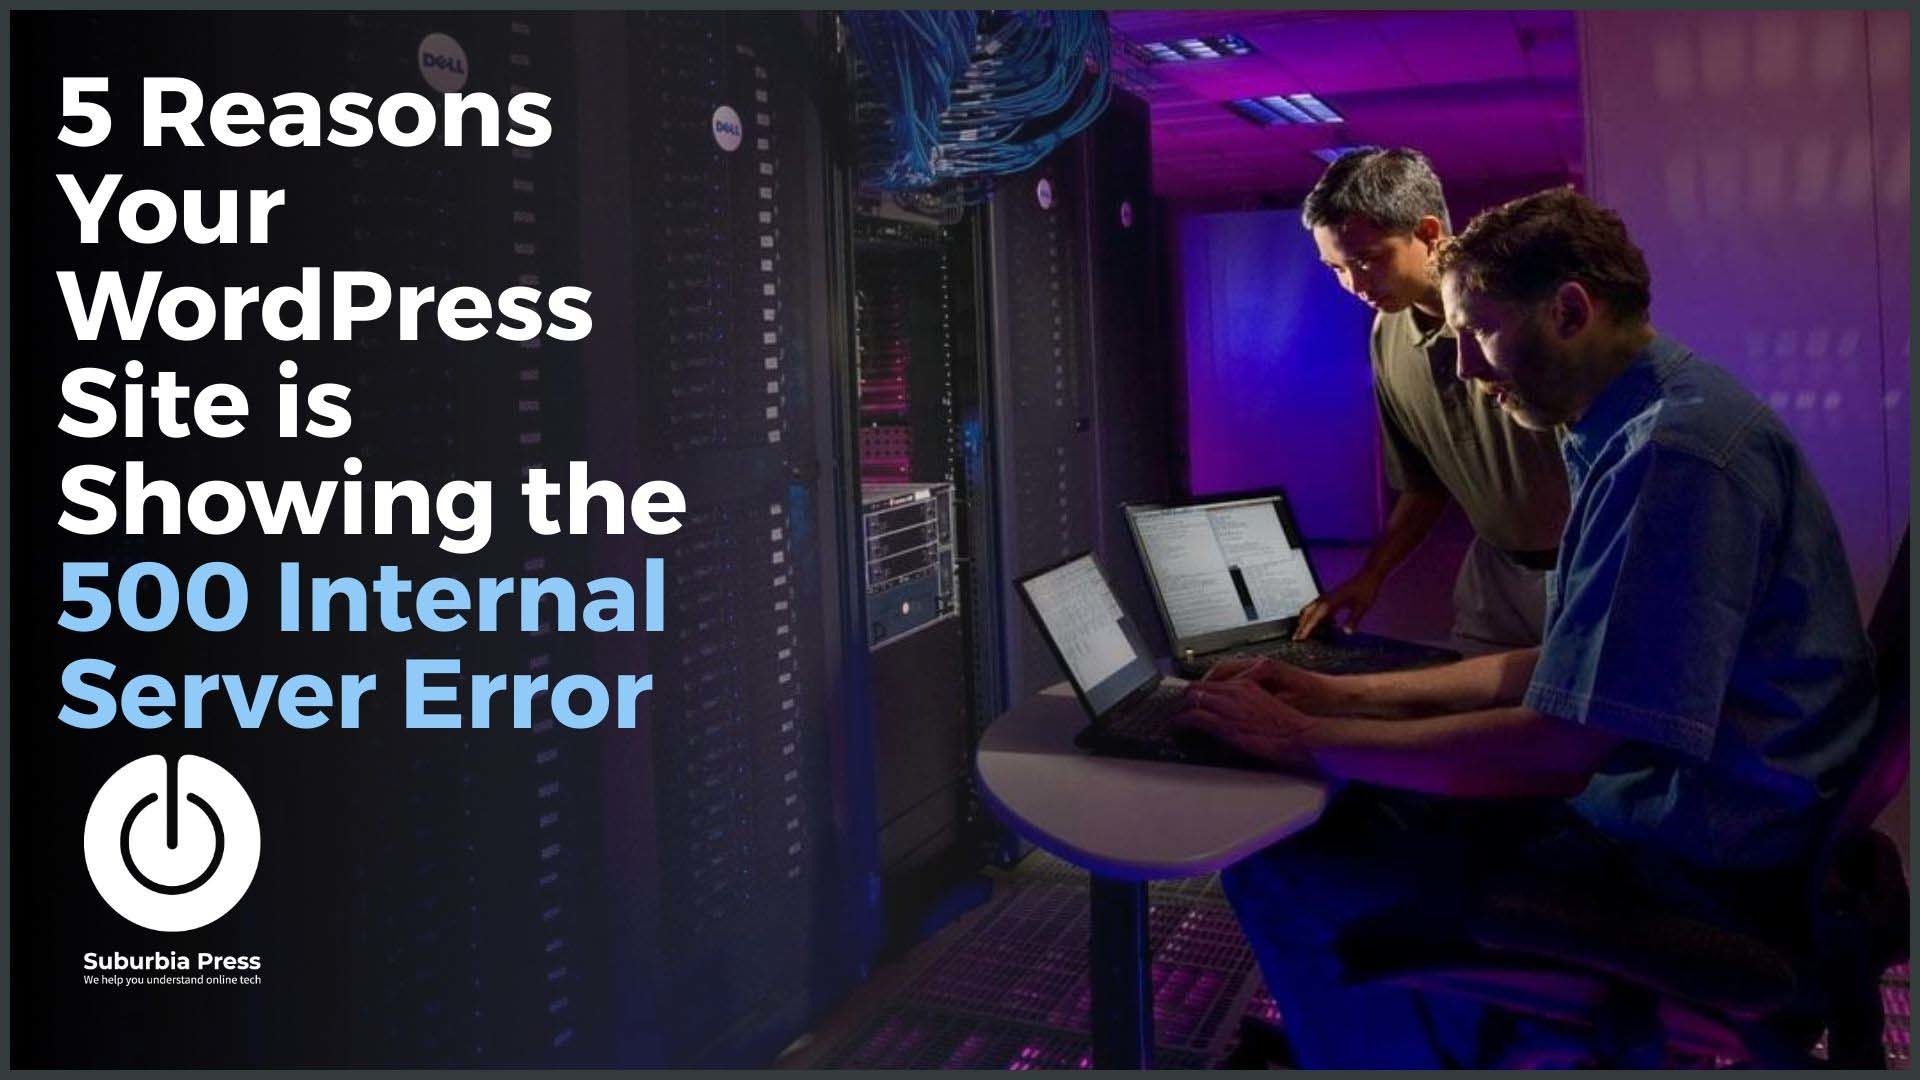 5 Reasons Your WordPress Site is Showing the 500 Internal Server Error